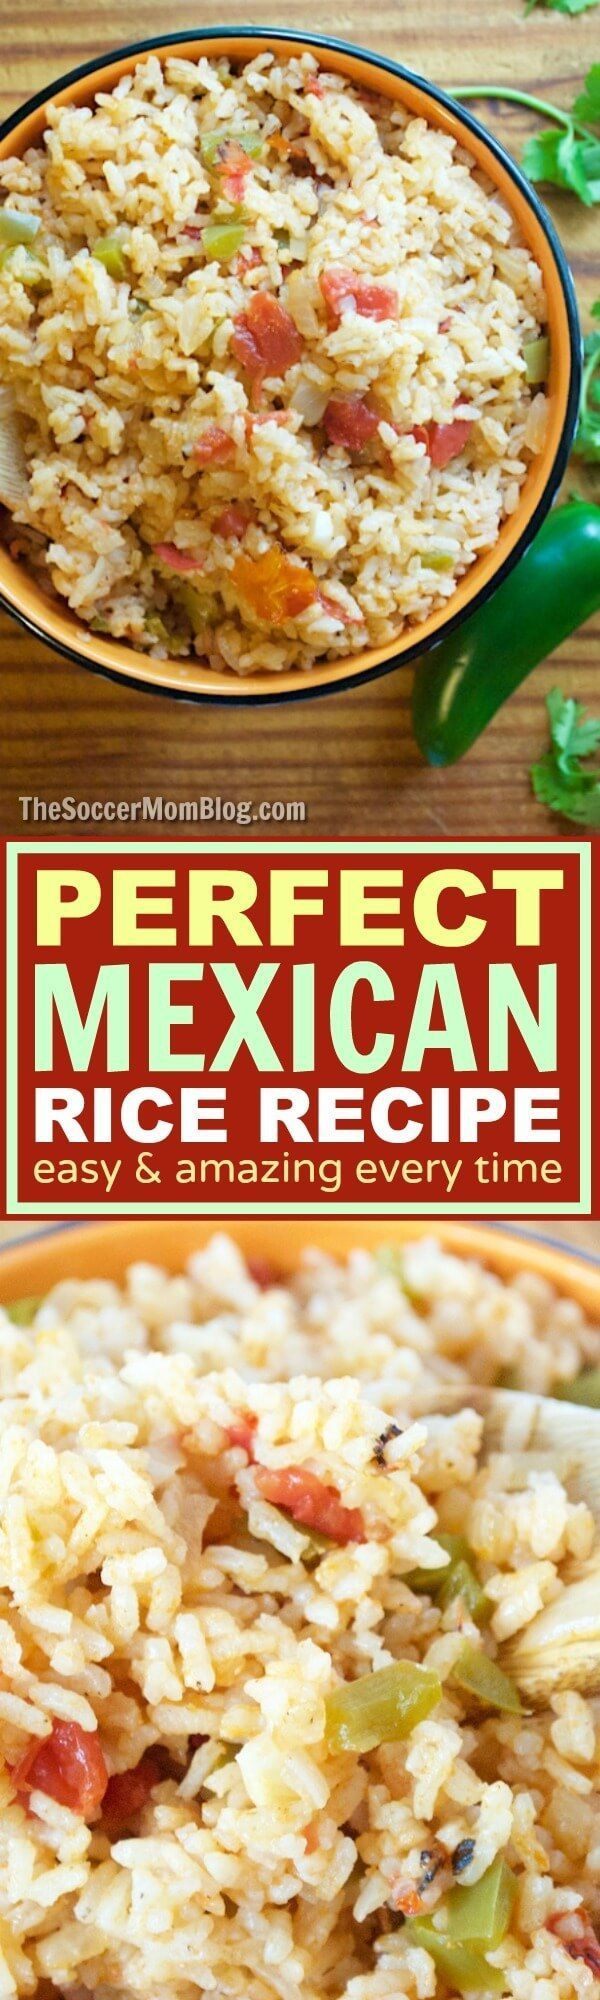 Passed down through generations and practiced to get it just right -- this truly is the perfect Spanish Rice recipe! A classic Mexican food staple.